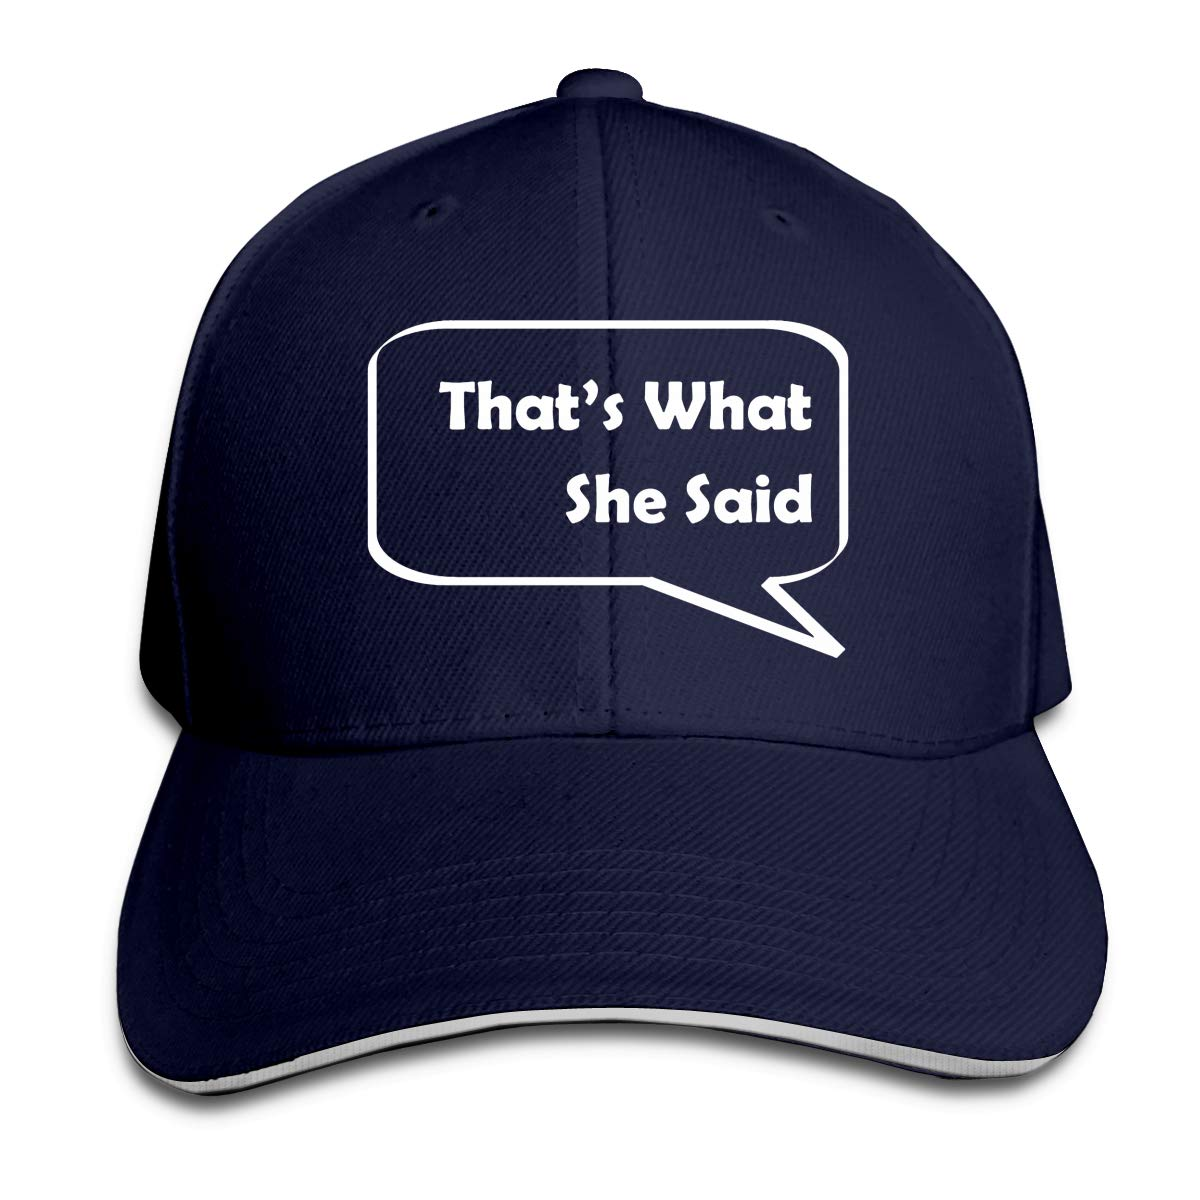 Thats What She Said Unisex Adult Baseball Caps Adjustable Sandwich Caps Jeans Caps Adjustable Denim Trucker Cap